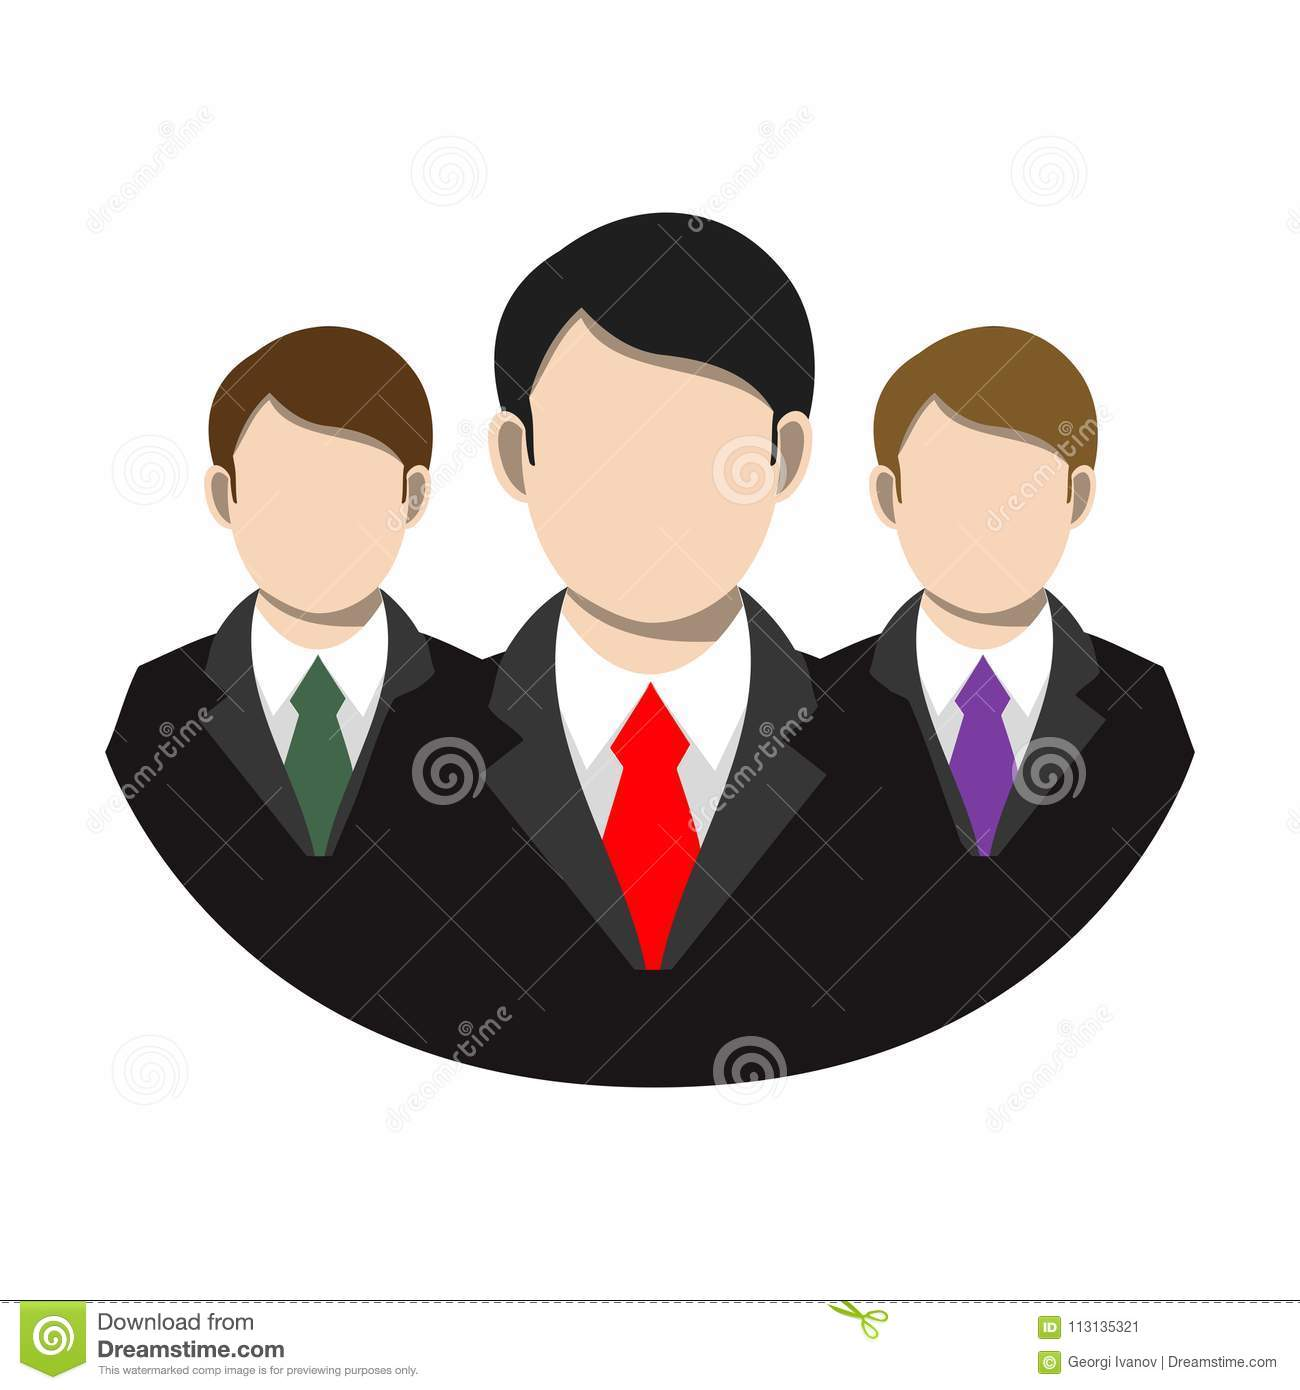 Simple, Flat Businessmen Suit And Tie Team Icon. Isolated On